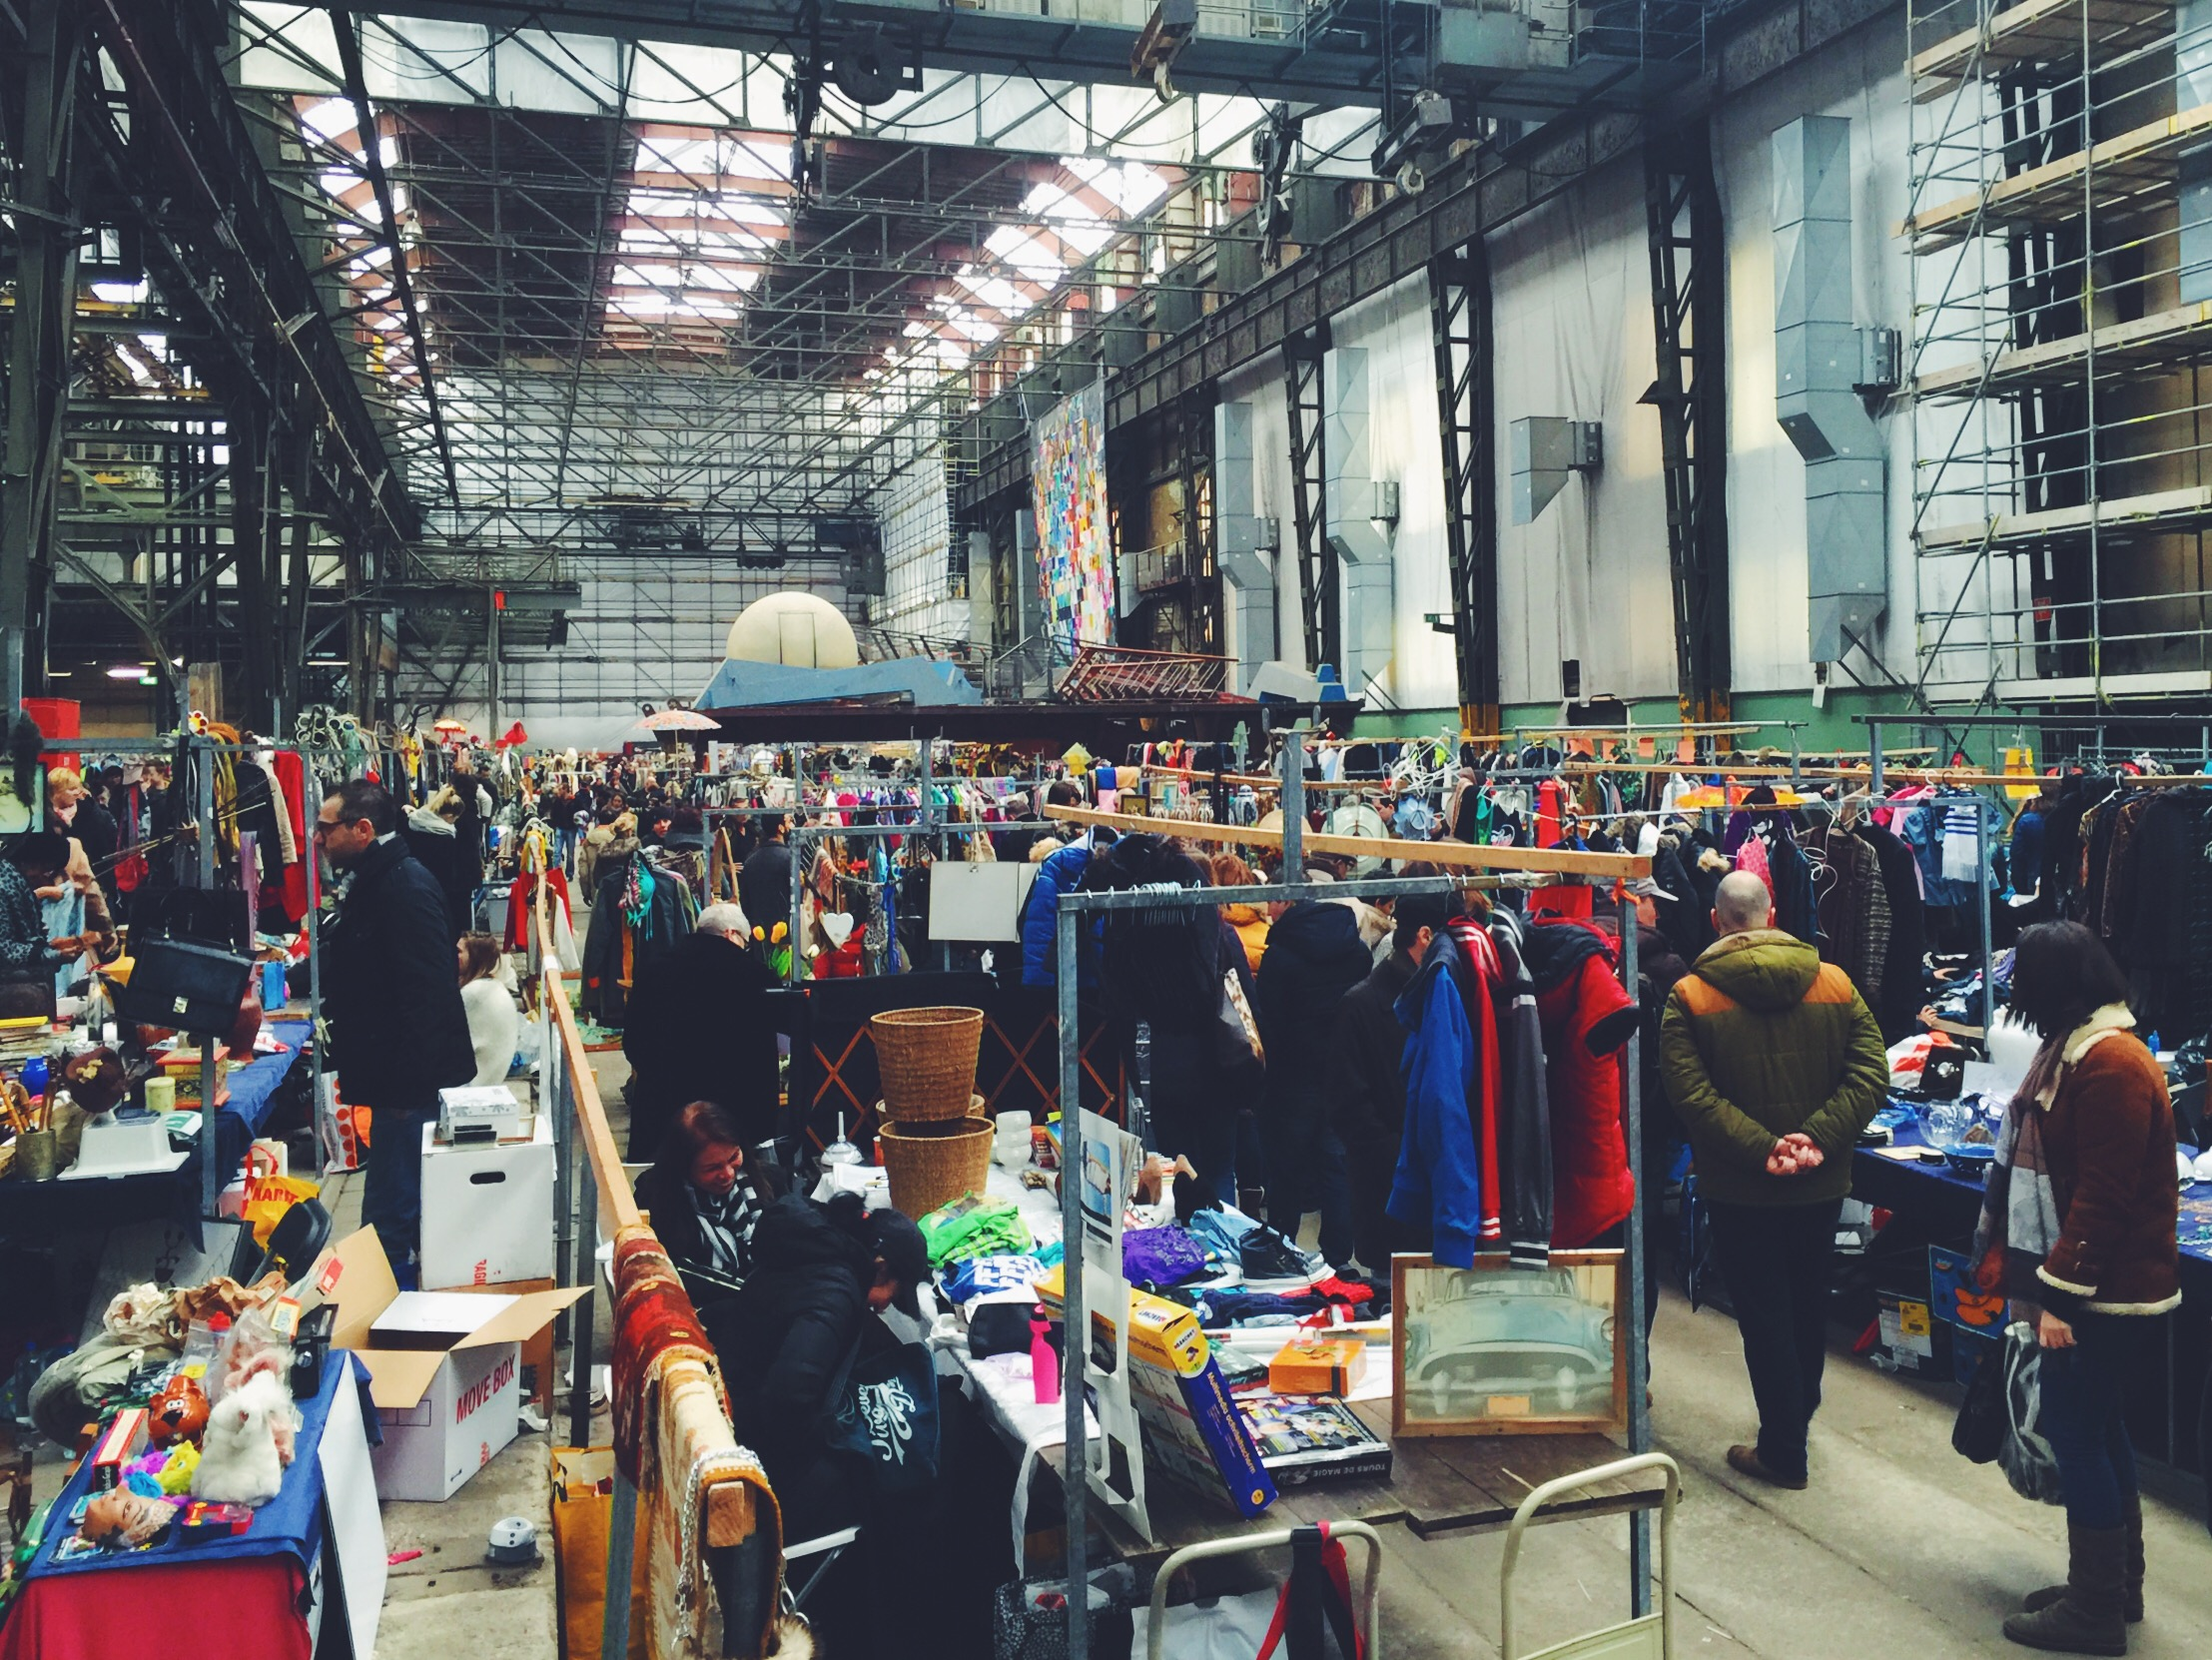 Vlooienmarkt Ijhallen To Do Amsterdam Archieven - Lovecities